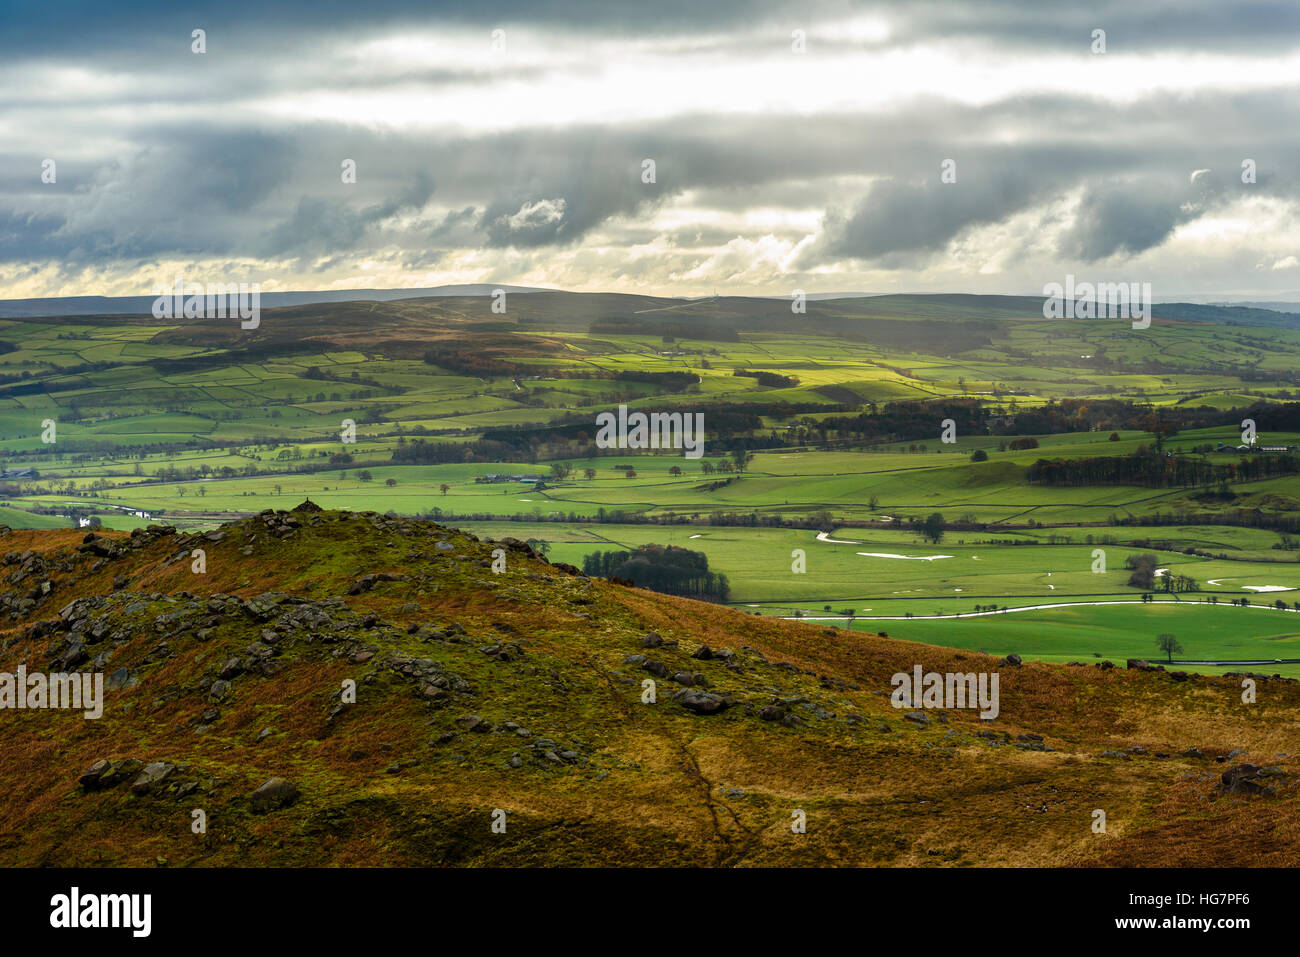 View from Flasby Fell in the Yorkshire Dales National Park near Skipton towards Elslack Moor - Stock Image